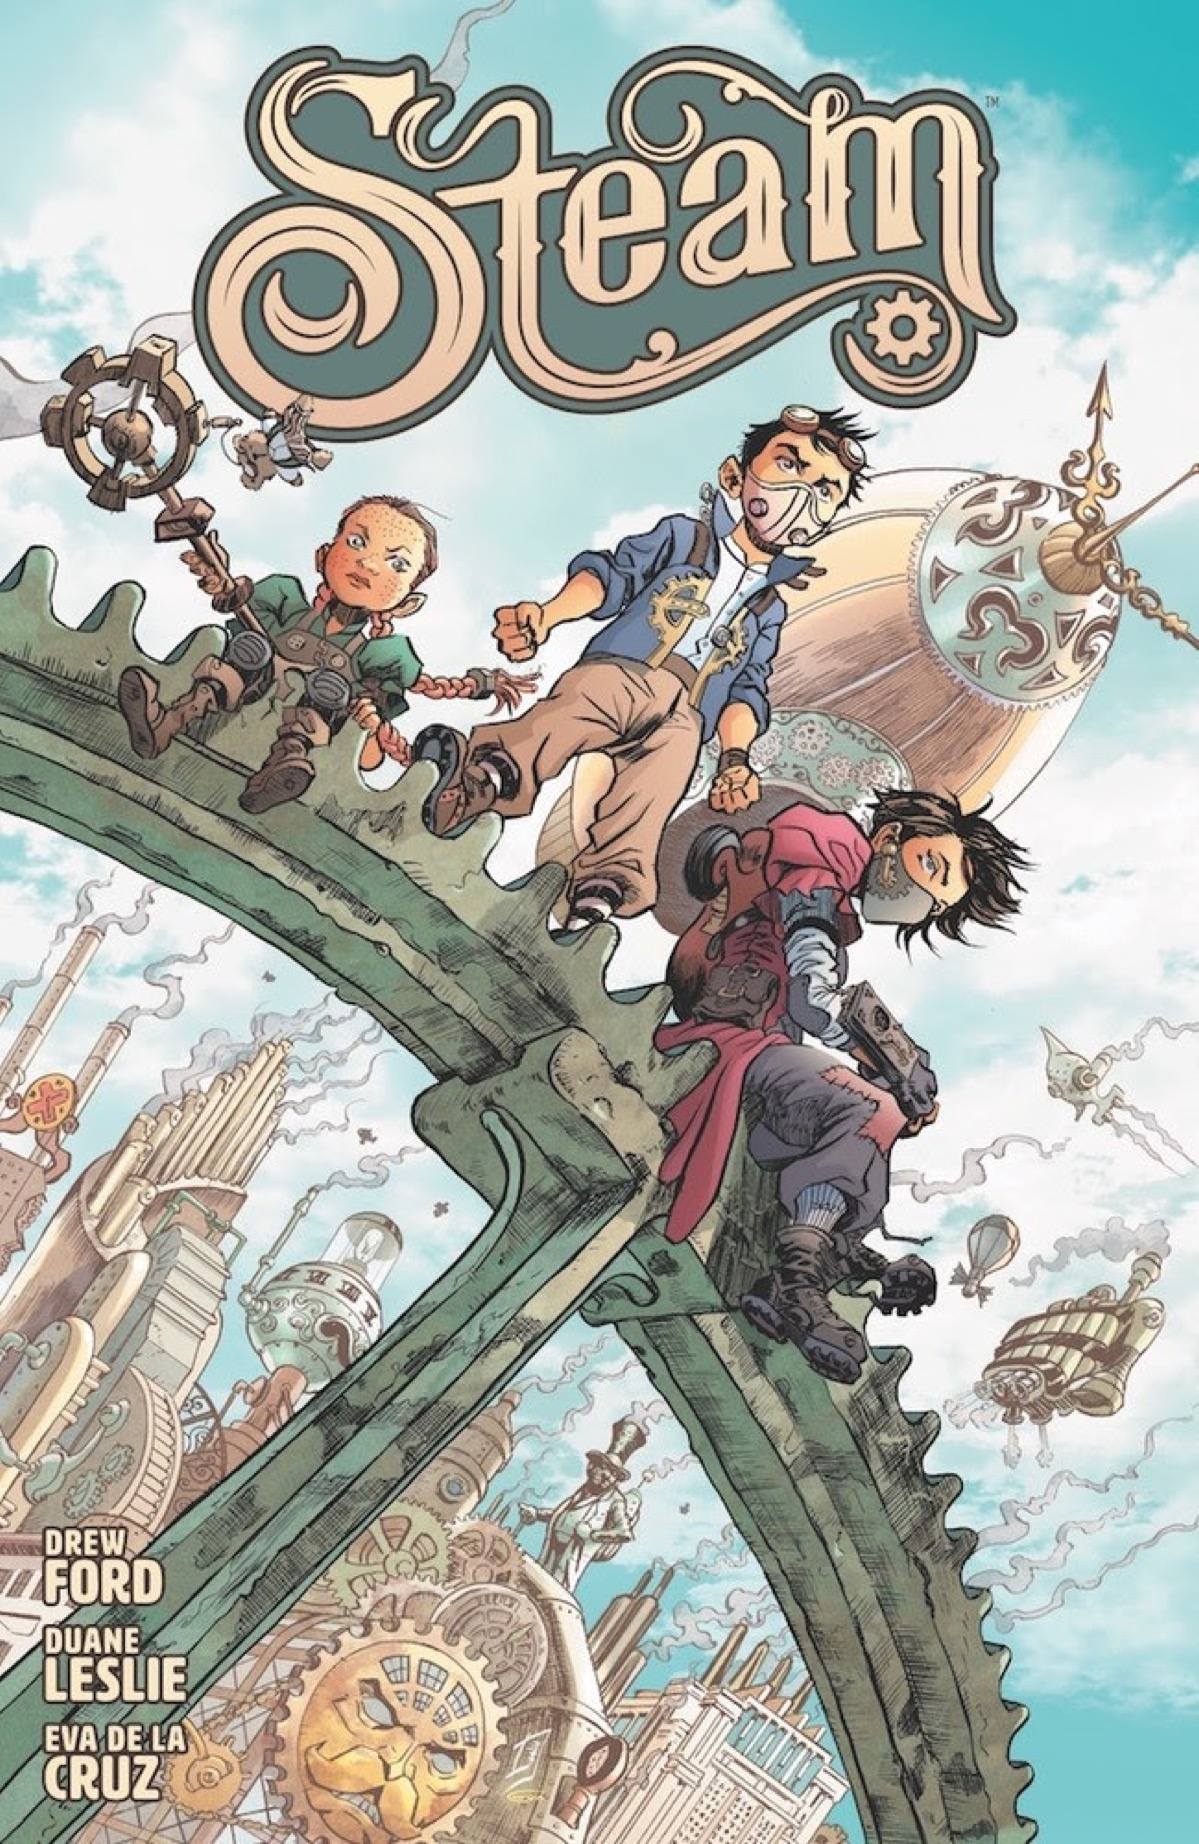 Drew Ford, Duane Leslie, Eva de la Cruz Launch All-Ages Steampunk Adventure at Dark Horse in 2020